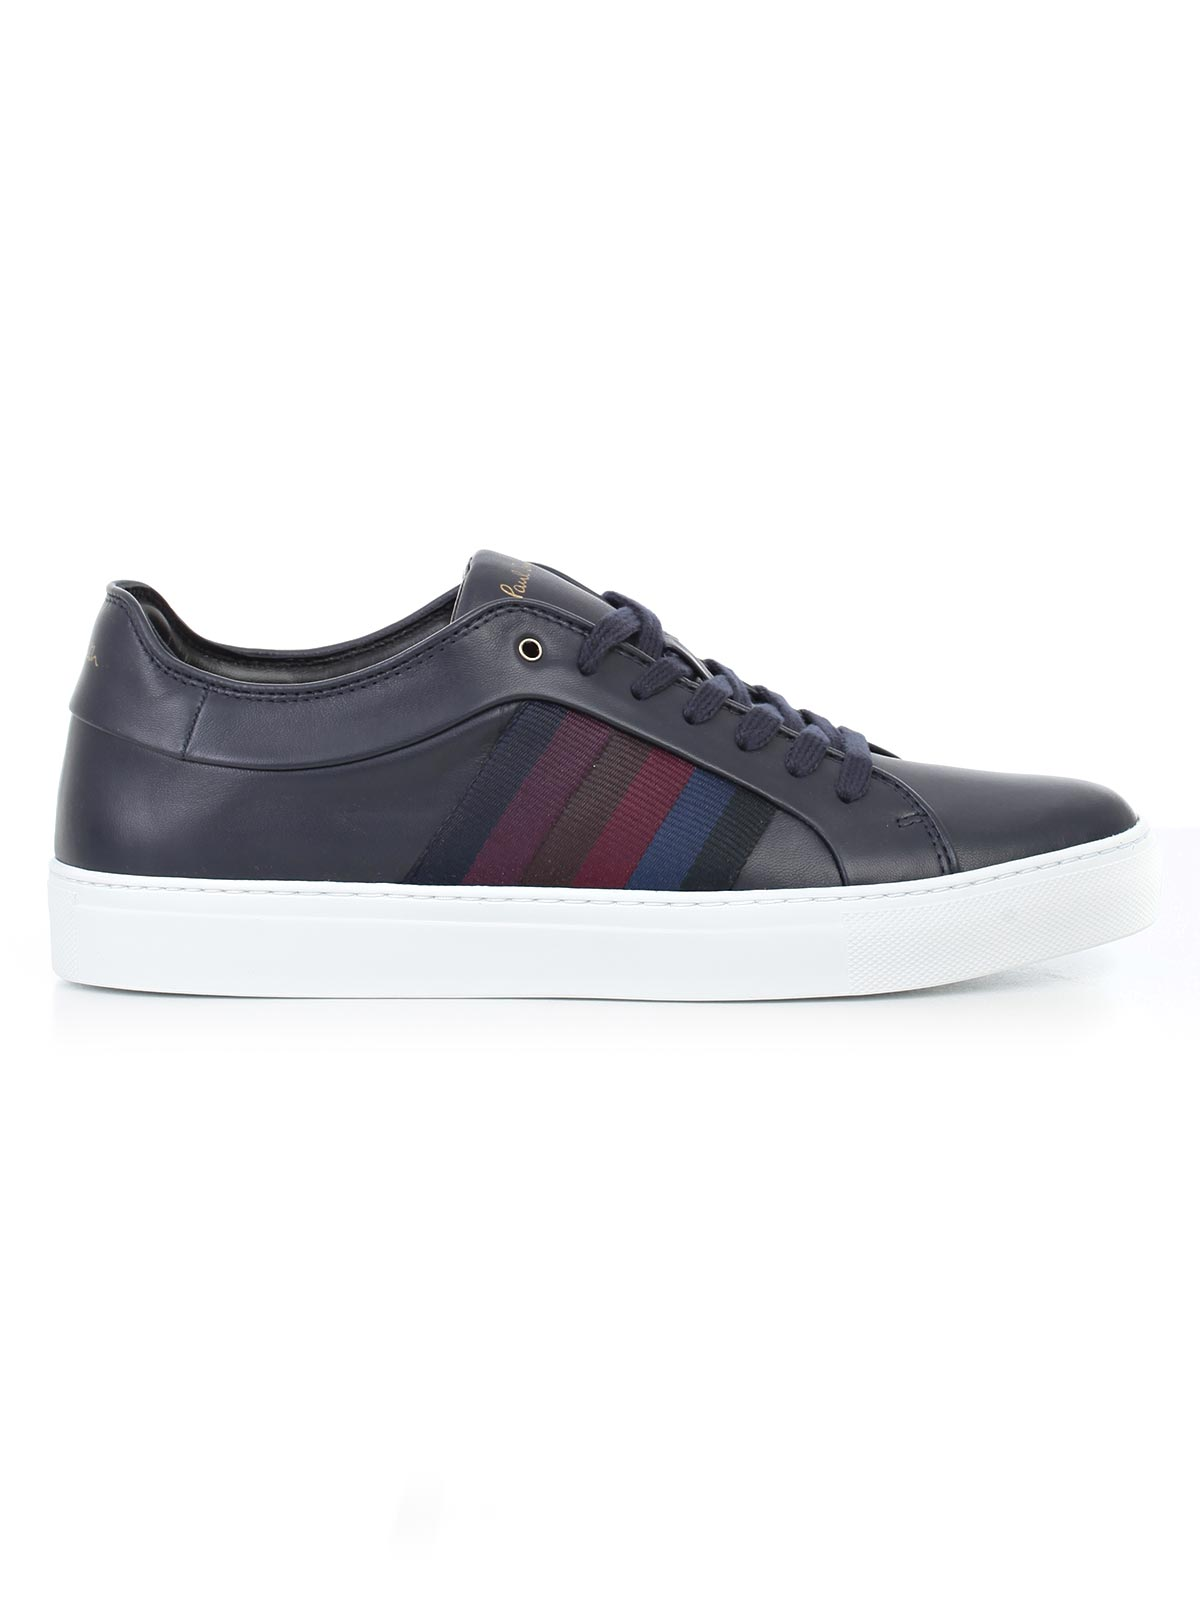 Picture of PAUL SMITH FOOTWEAR SCARPA SNEAKERS